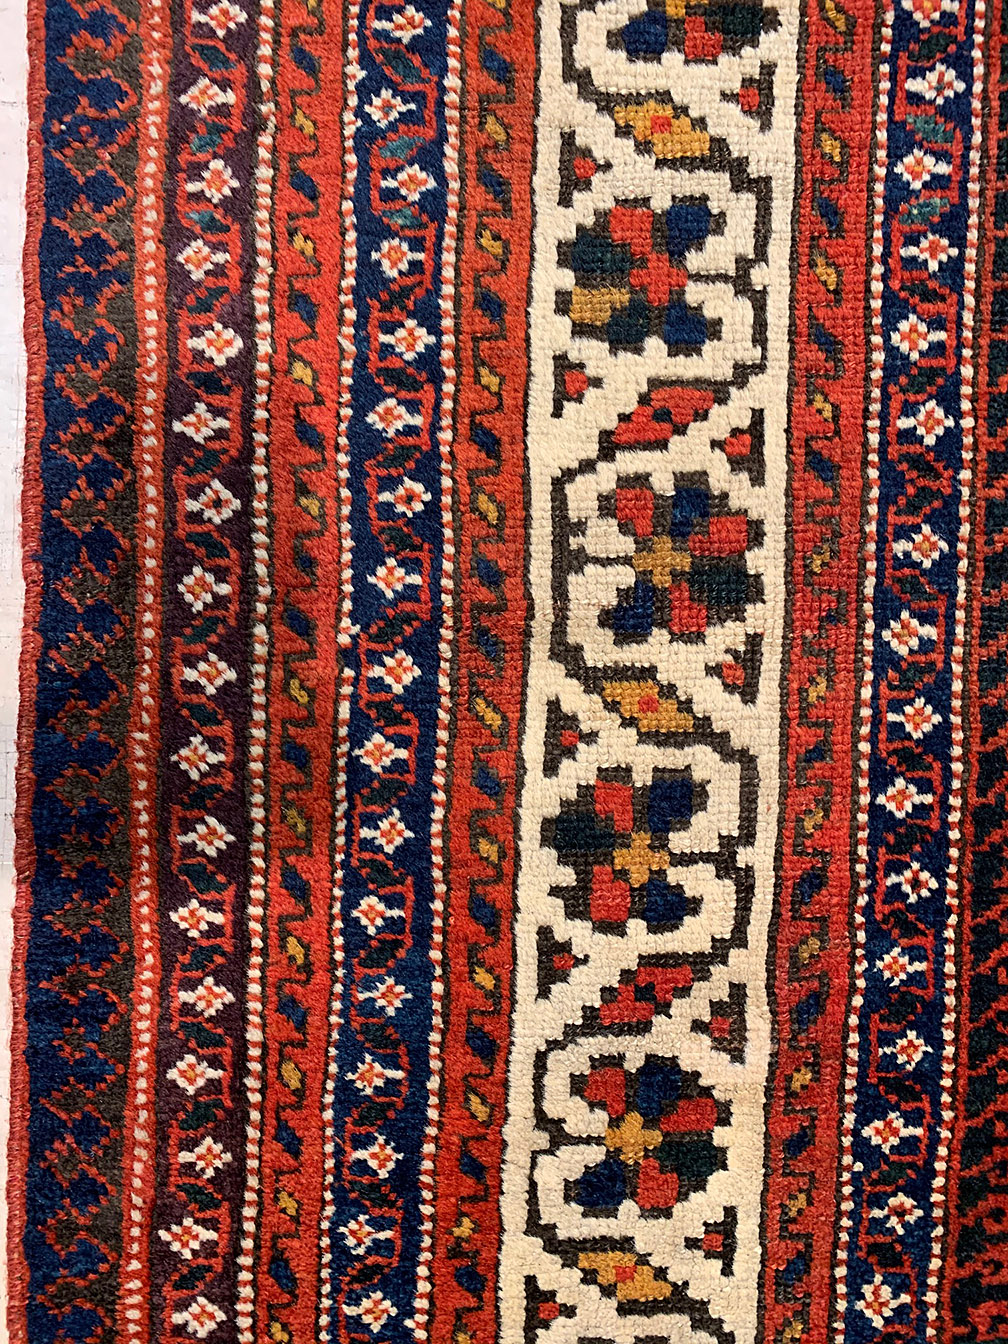 Antique kurdish Rug - # 54634